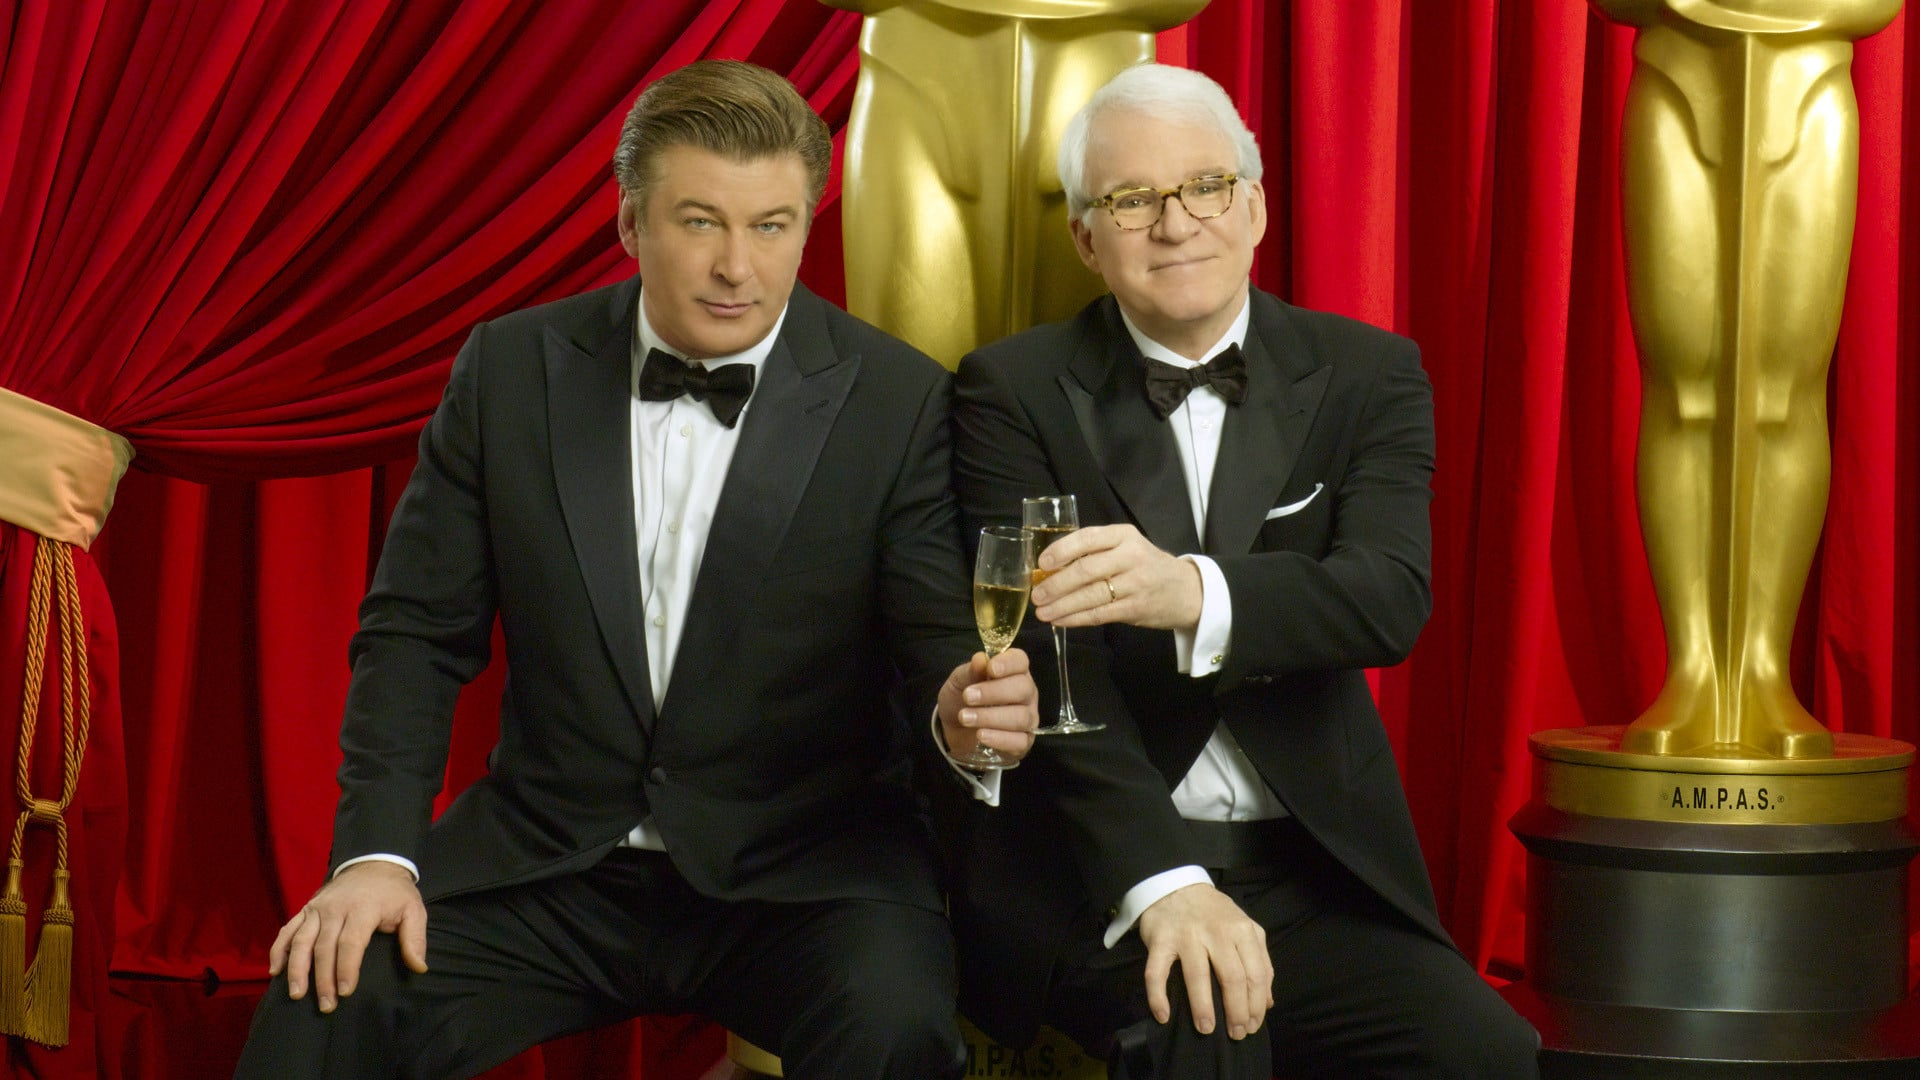 Alec Baldwin and Steve Martin presented the Oscars in 2010